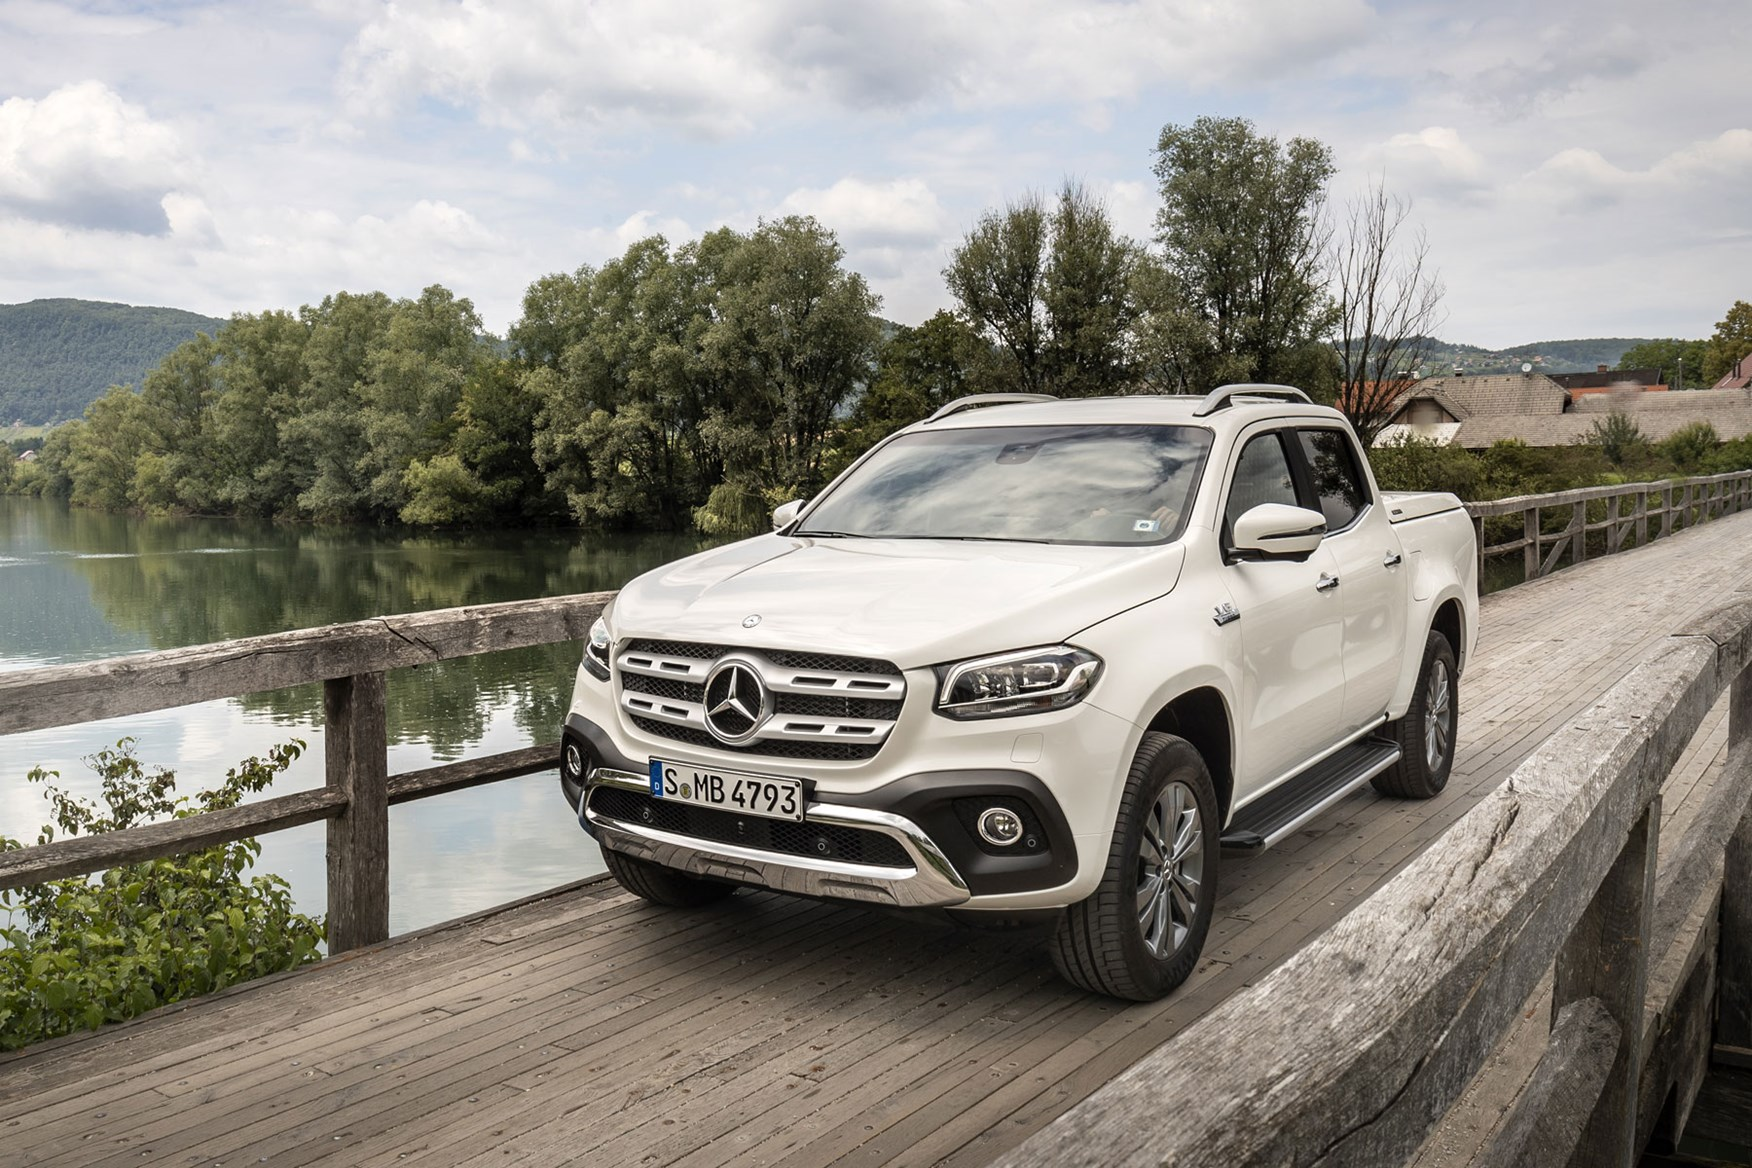 Mercedes X Class 350 D Power 2018 Review 30 Litre V6 Turbo Skoda Pick Up 1 3 Engine Diagram Pickup On Parkers Vans And Pickups